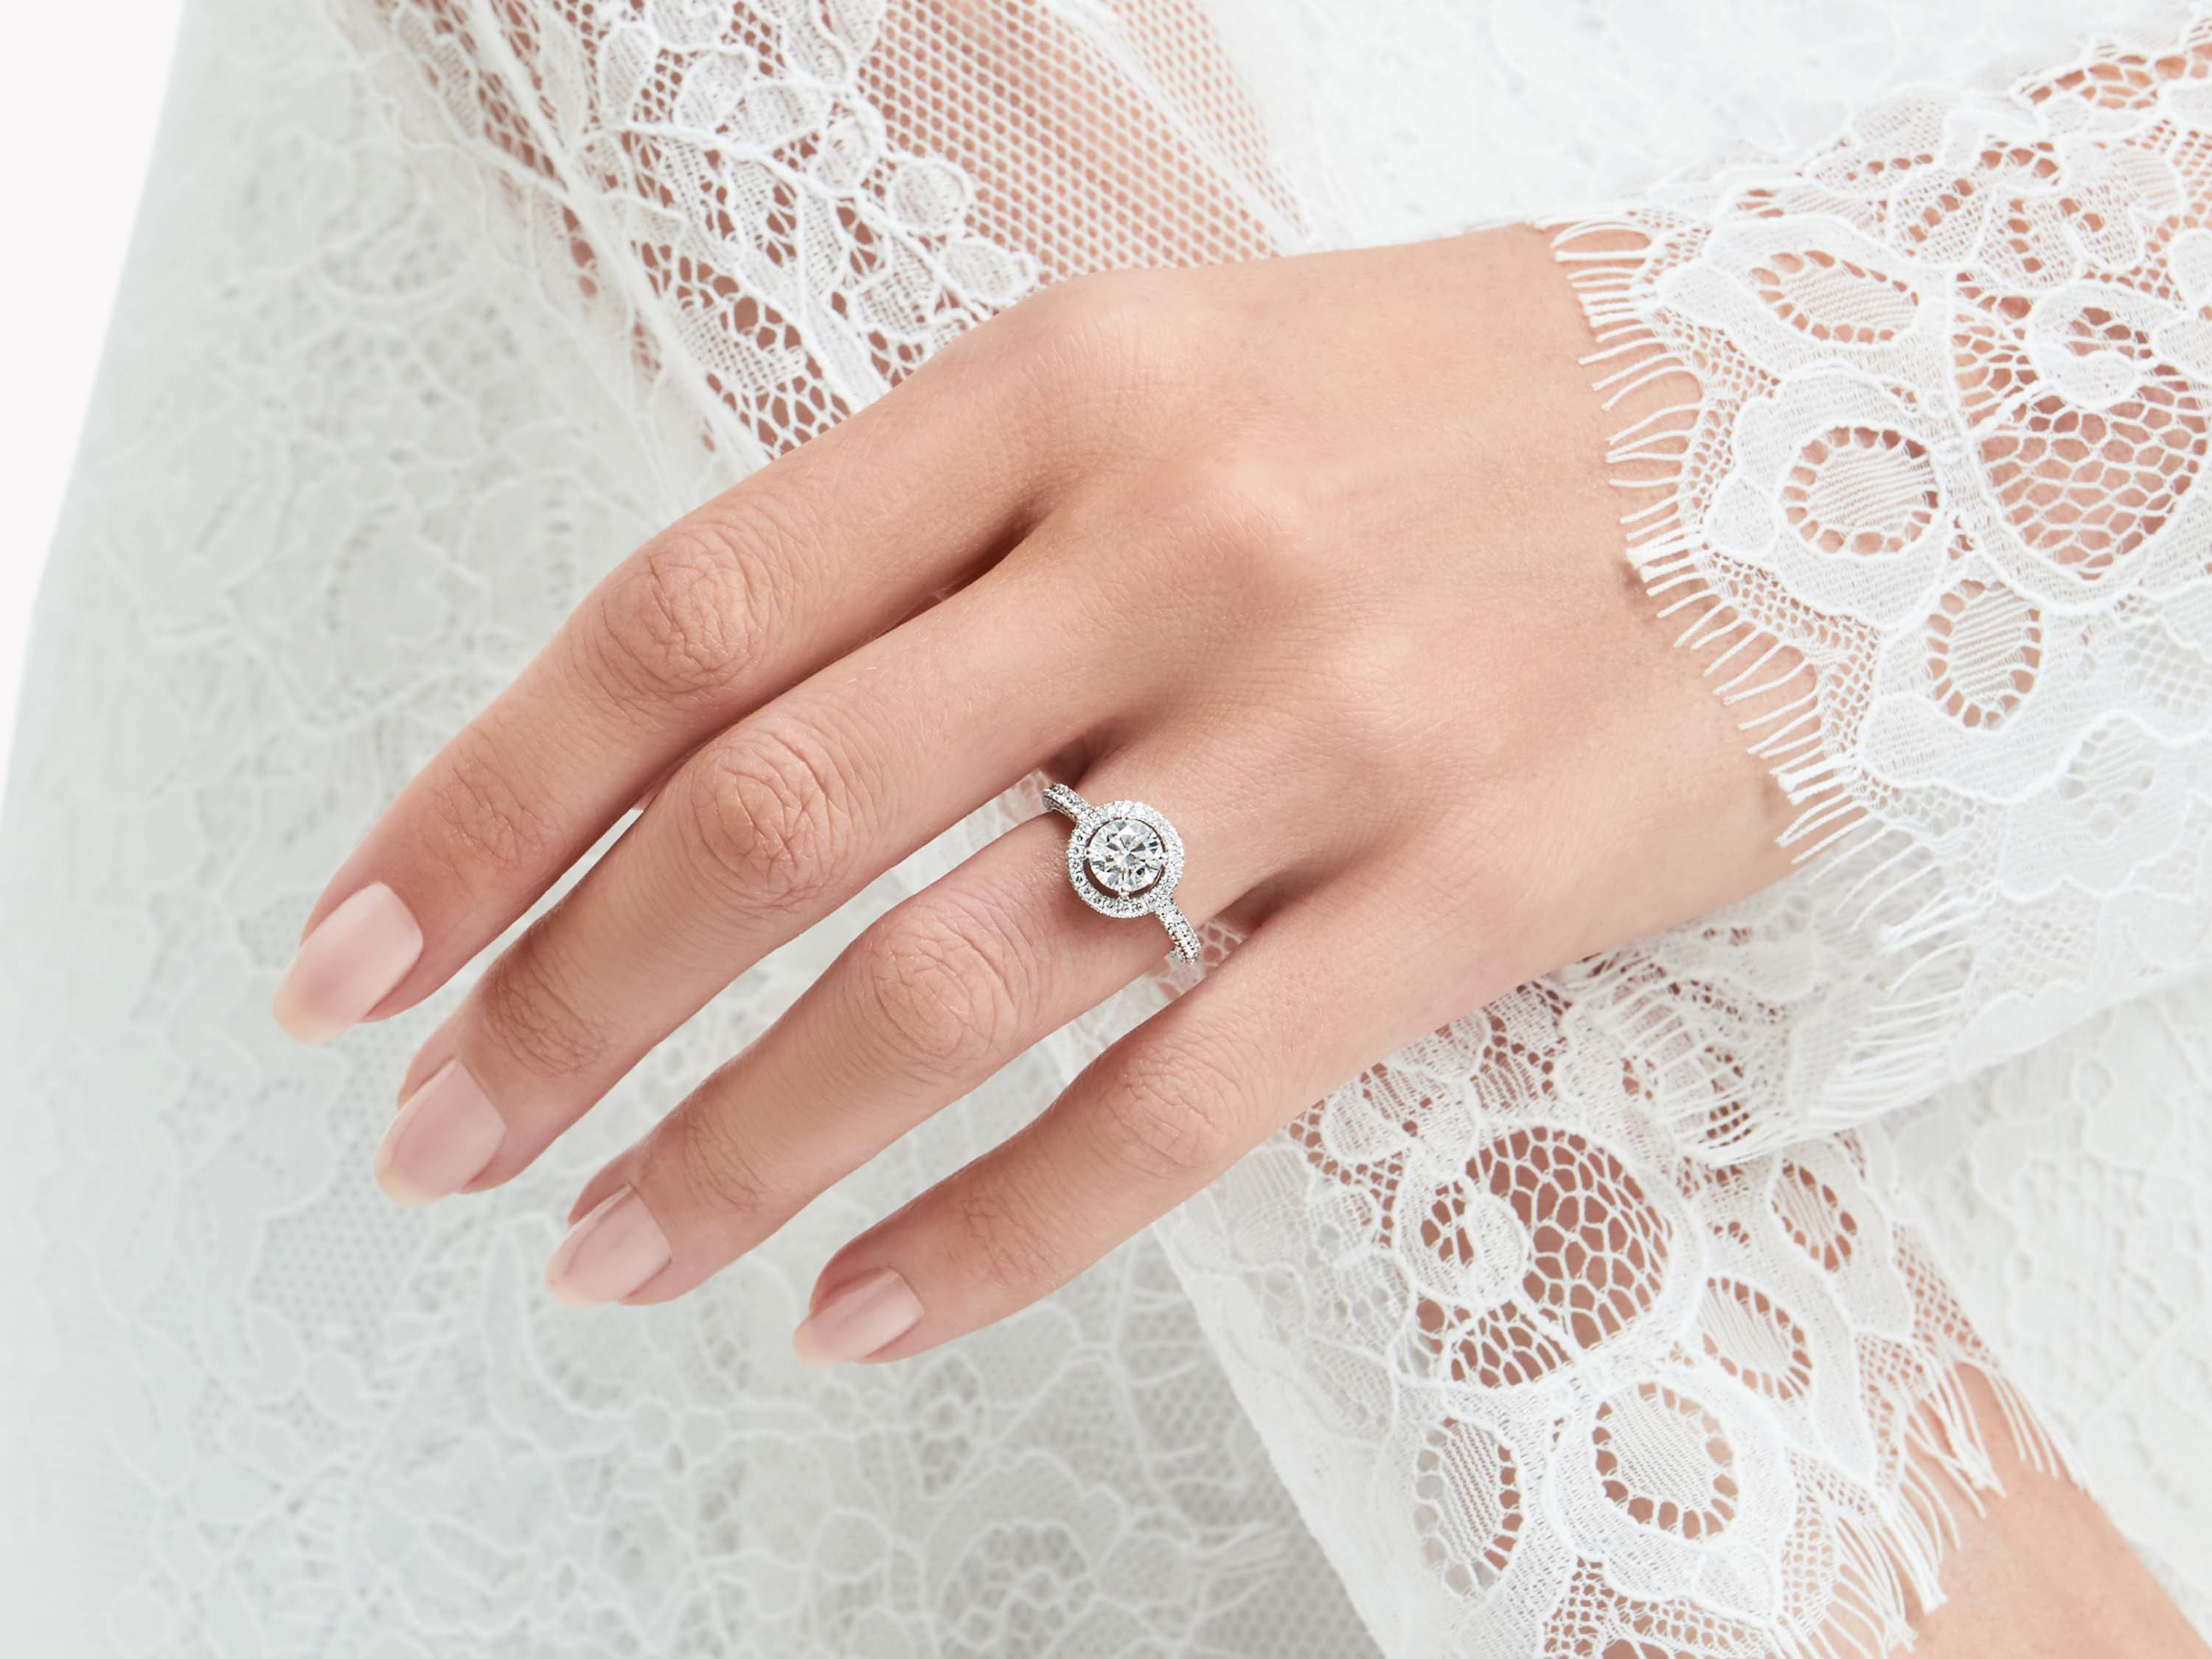 Model wears Constellation Round Diamond Engagement Ring from the Graff bridal jewellery collection